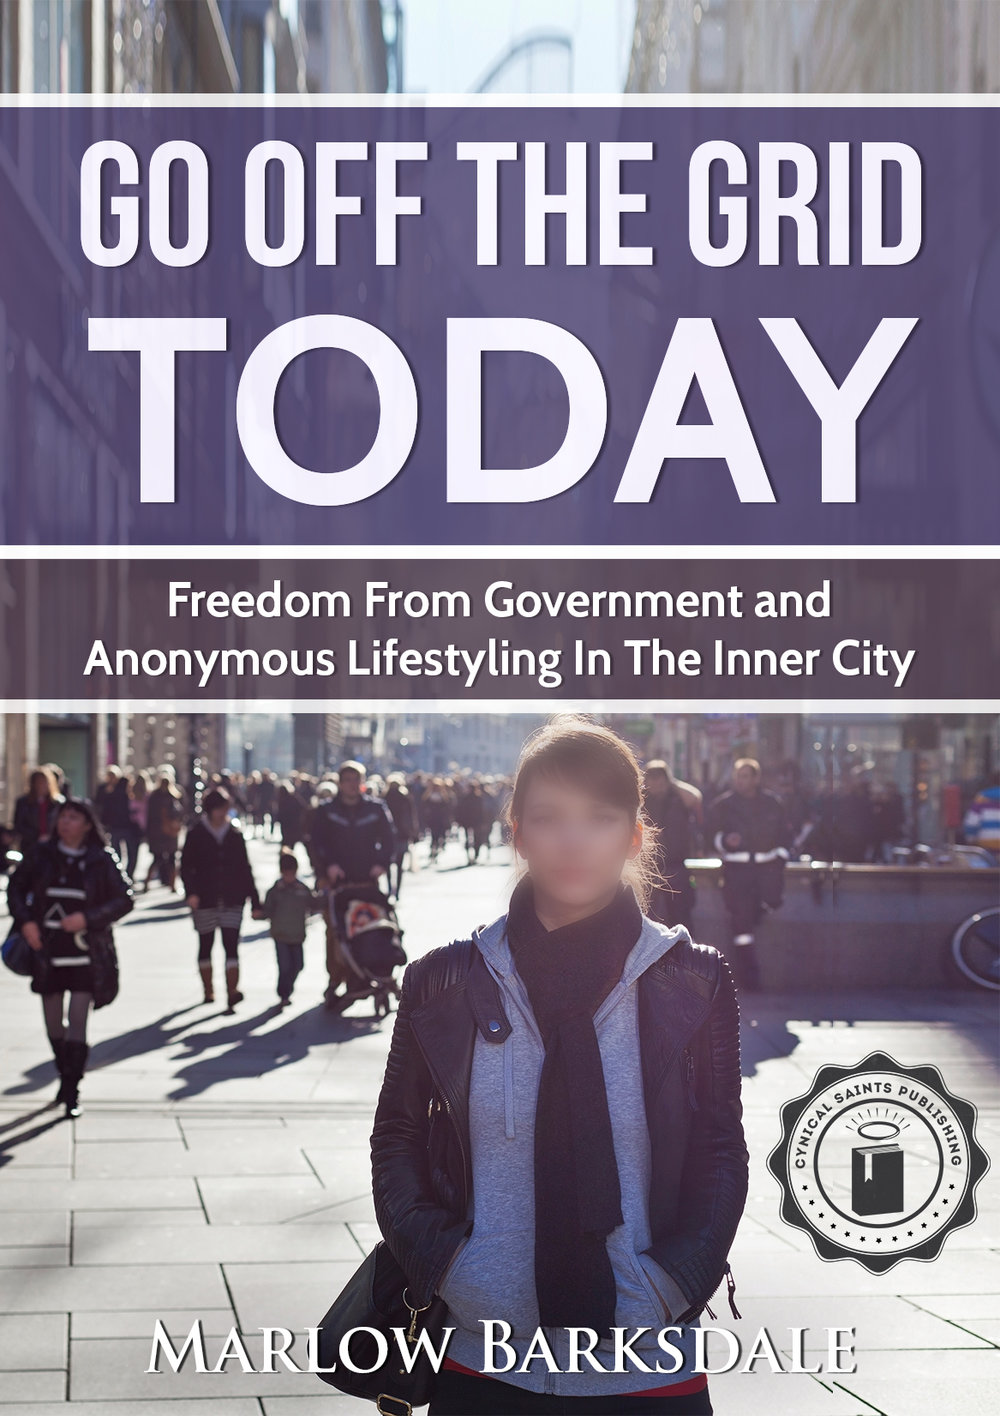 Go Off The Grid By Marlow Barksdale